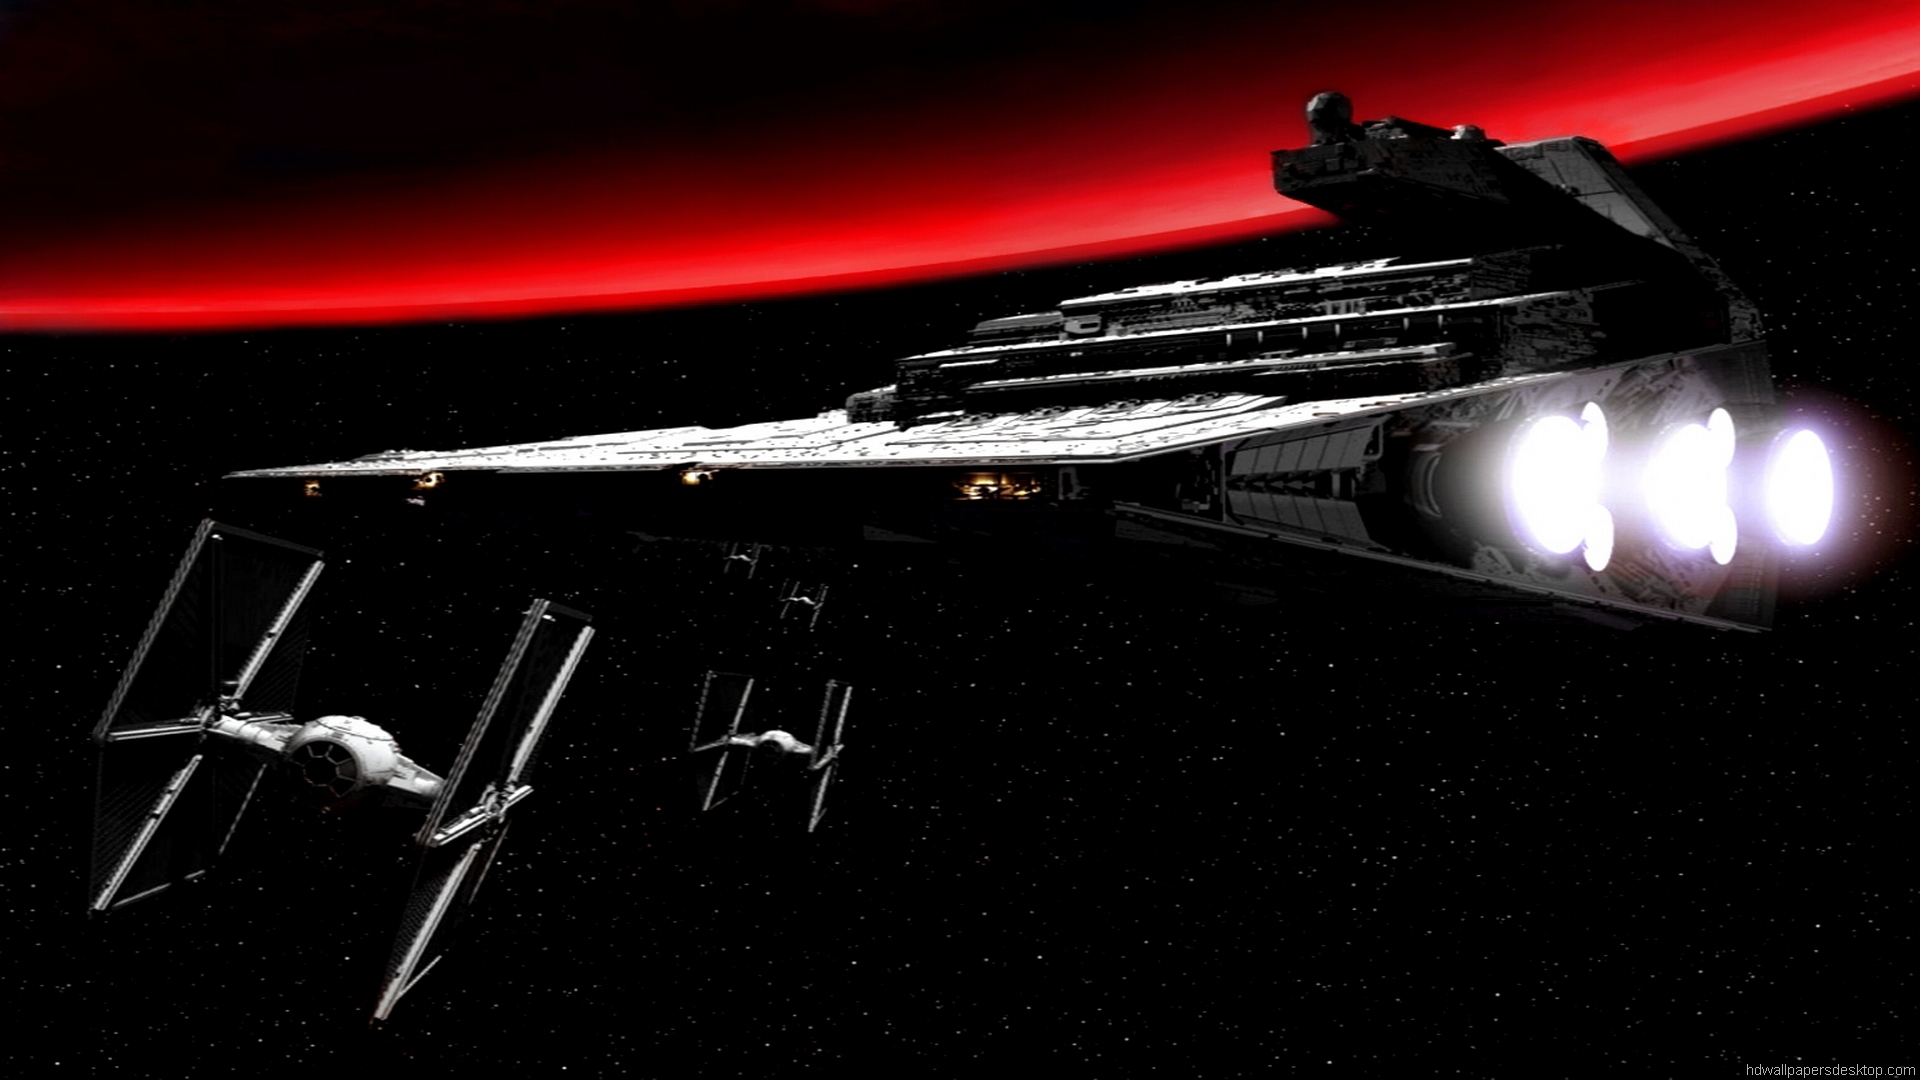 Star Wars Full HD Wallpaper 1080p Desktop star wars empire 1920x1080